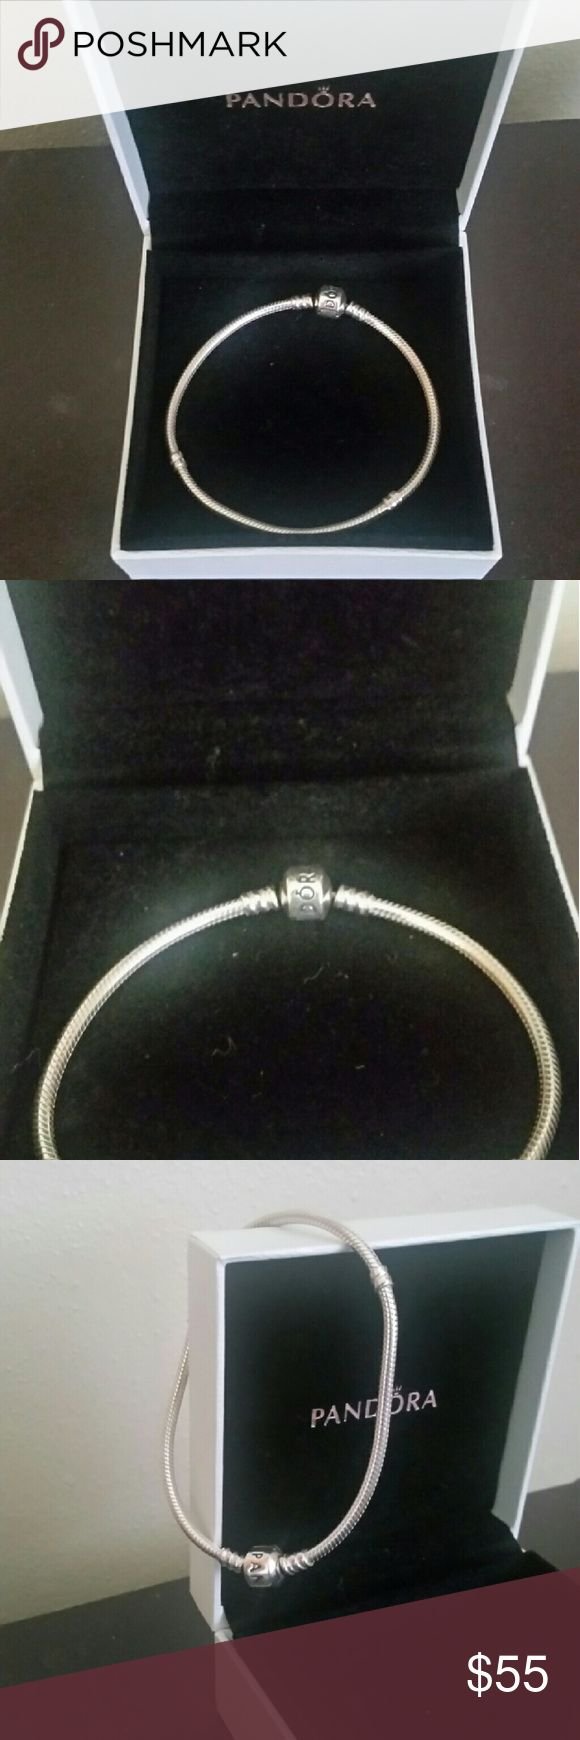 "PANDORA Sterling Silver Rope Bracelet Barely worn and been kept in the box.  8"" inches.  Get for yourself or as a gift! Pandora Jewelry Bracelets"